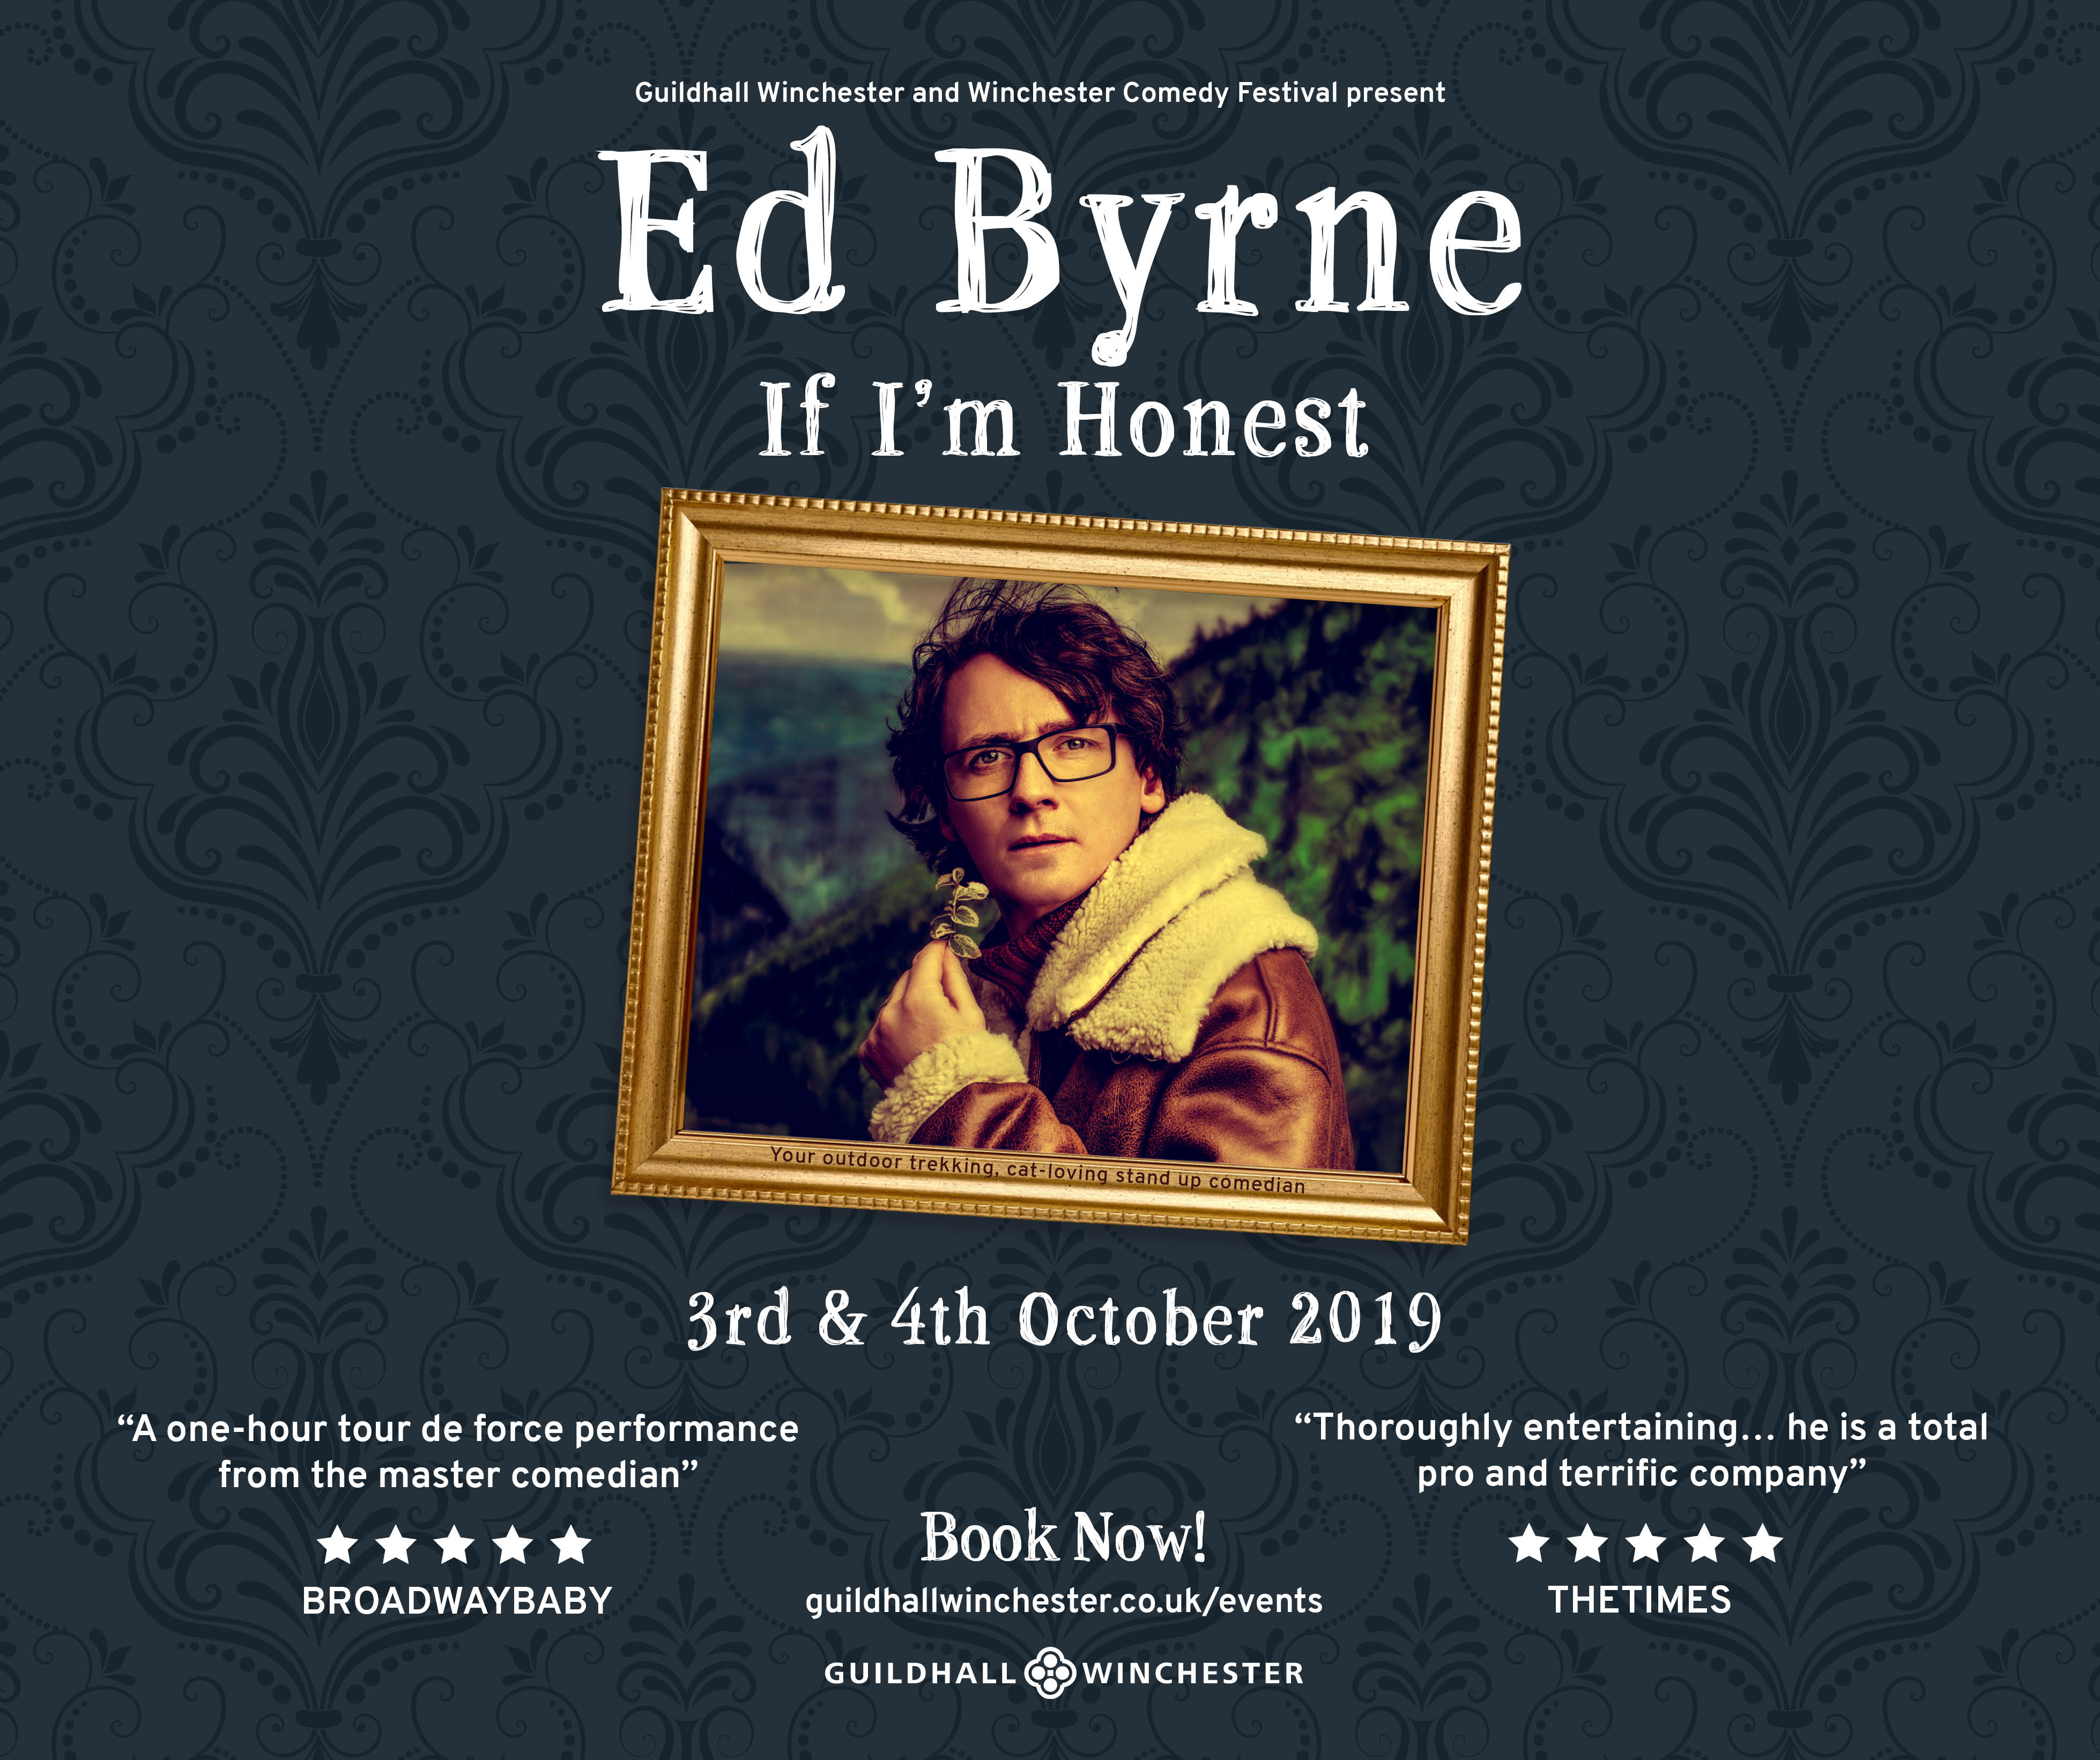 A poster for Ed Byrne comedy night - Guildhall winchester 3rd & 4th October